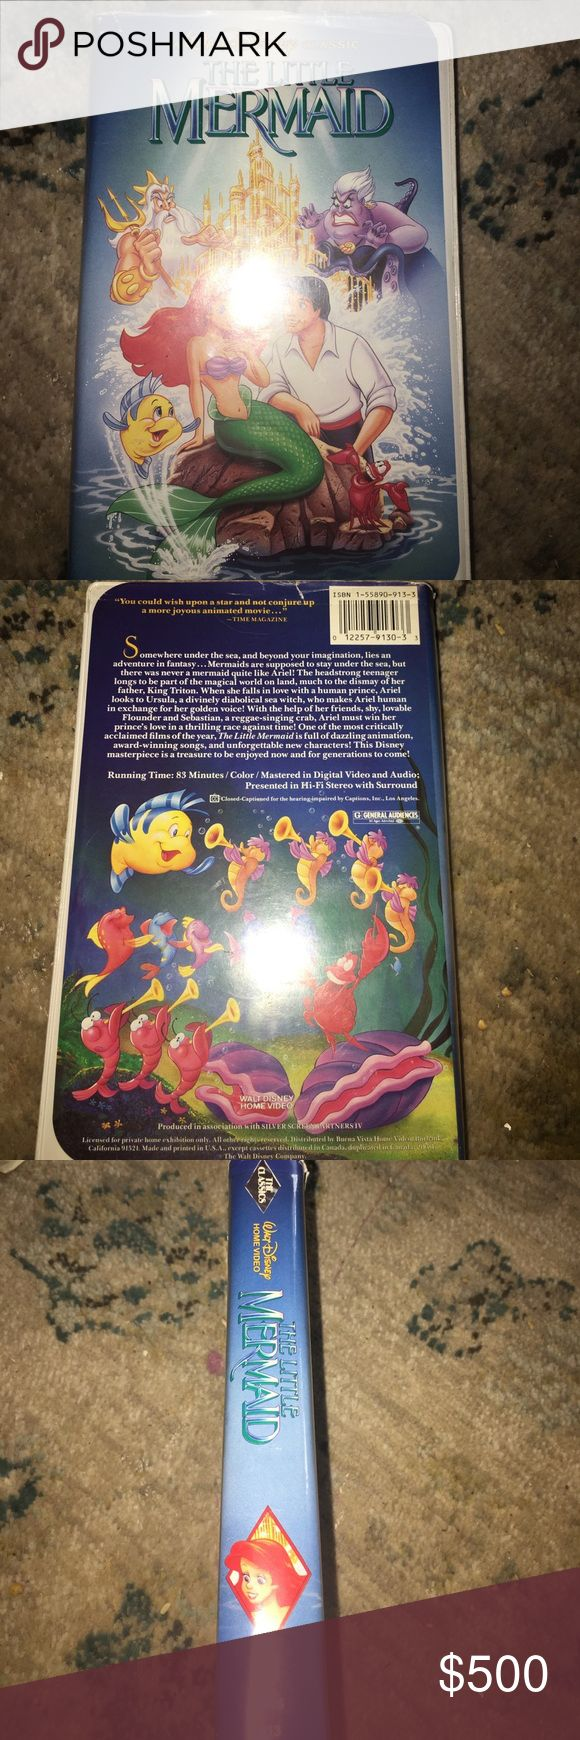 Vhs the little mermaid banned cover black dmnd cls Rare banned cover black diamond classic only out for 1 year before they pulled the cover art..is selling for more than $6000 on ebay Disney Other